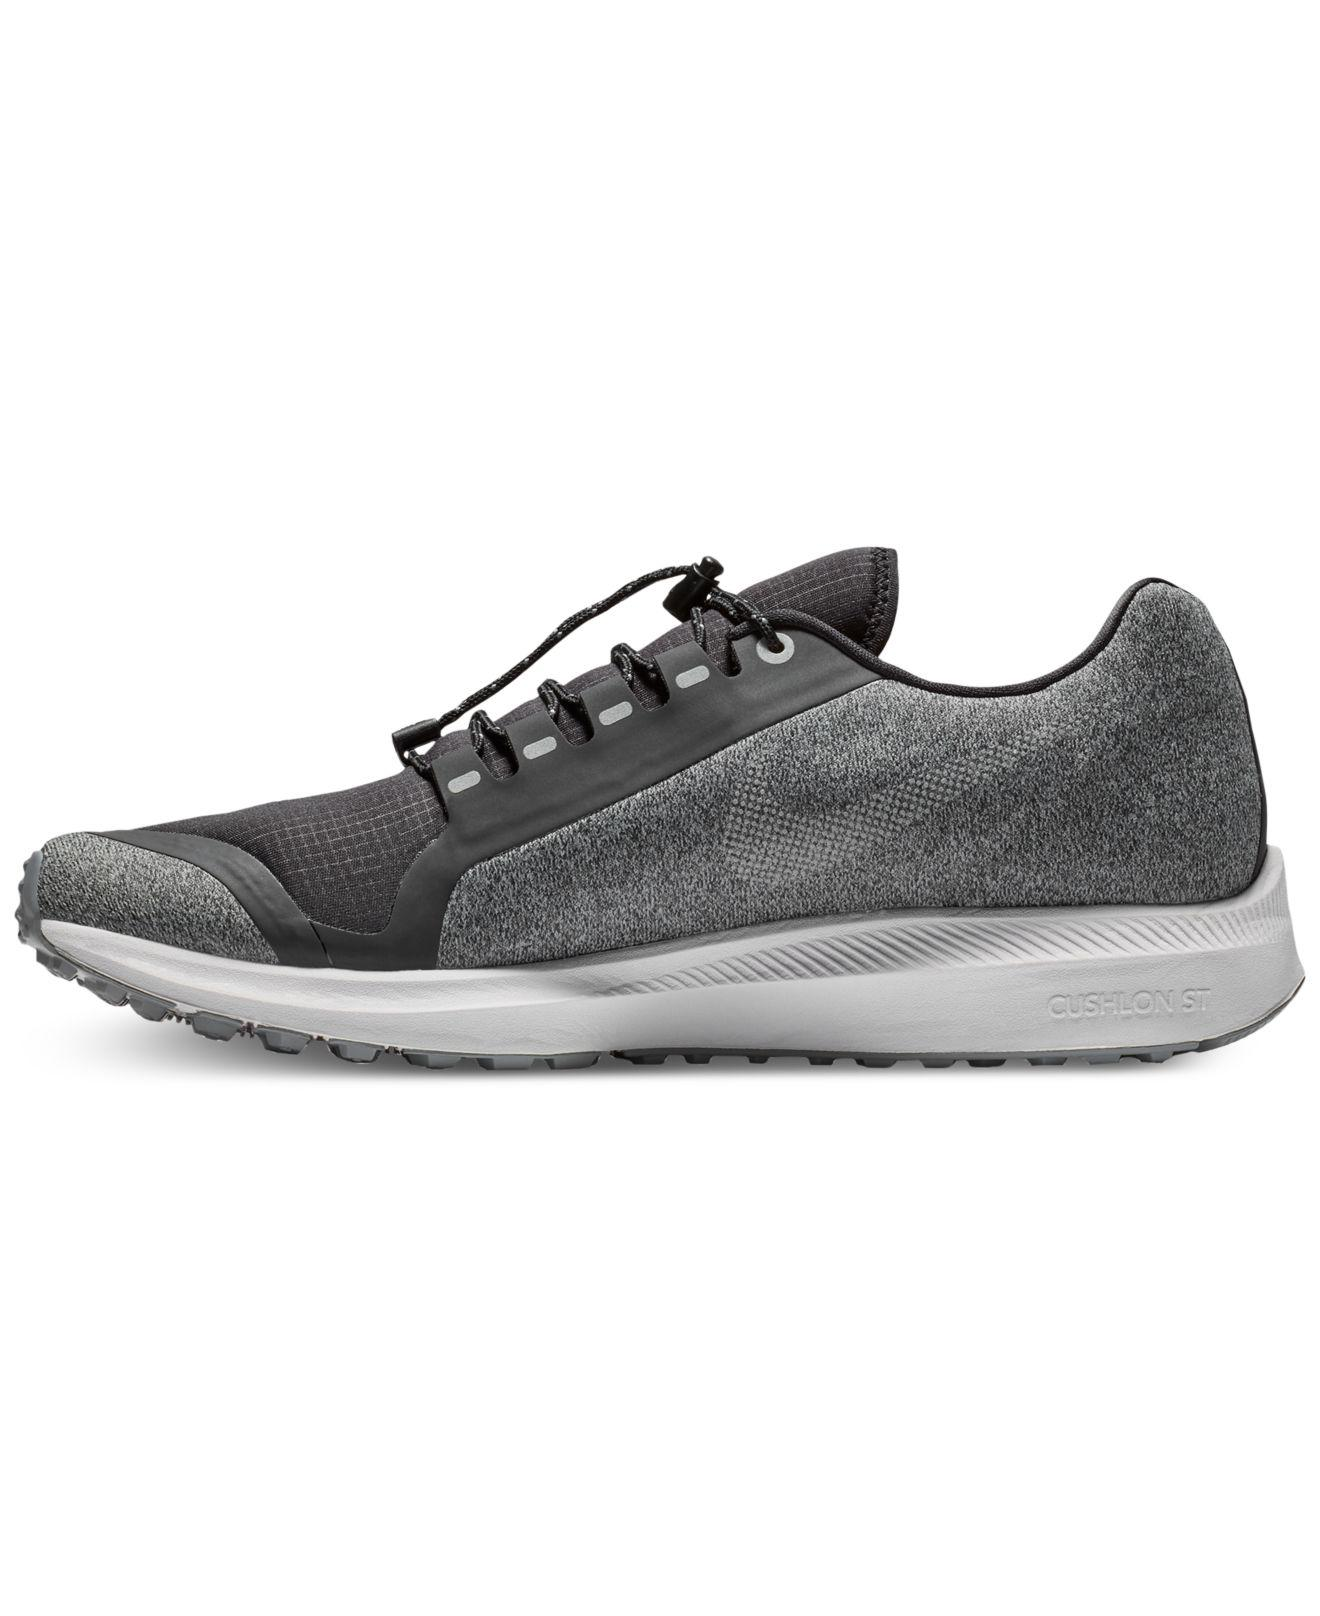 f7e3cf1a6cb1 Lyst - Nike Air Zoom Winflo 5 Running Sneakers From Finish Line in Black  for Men